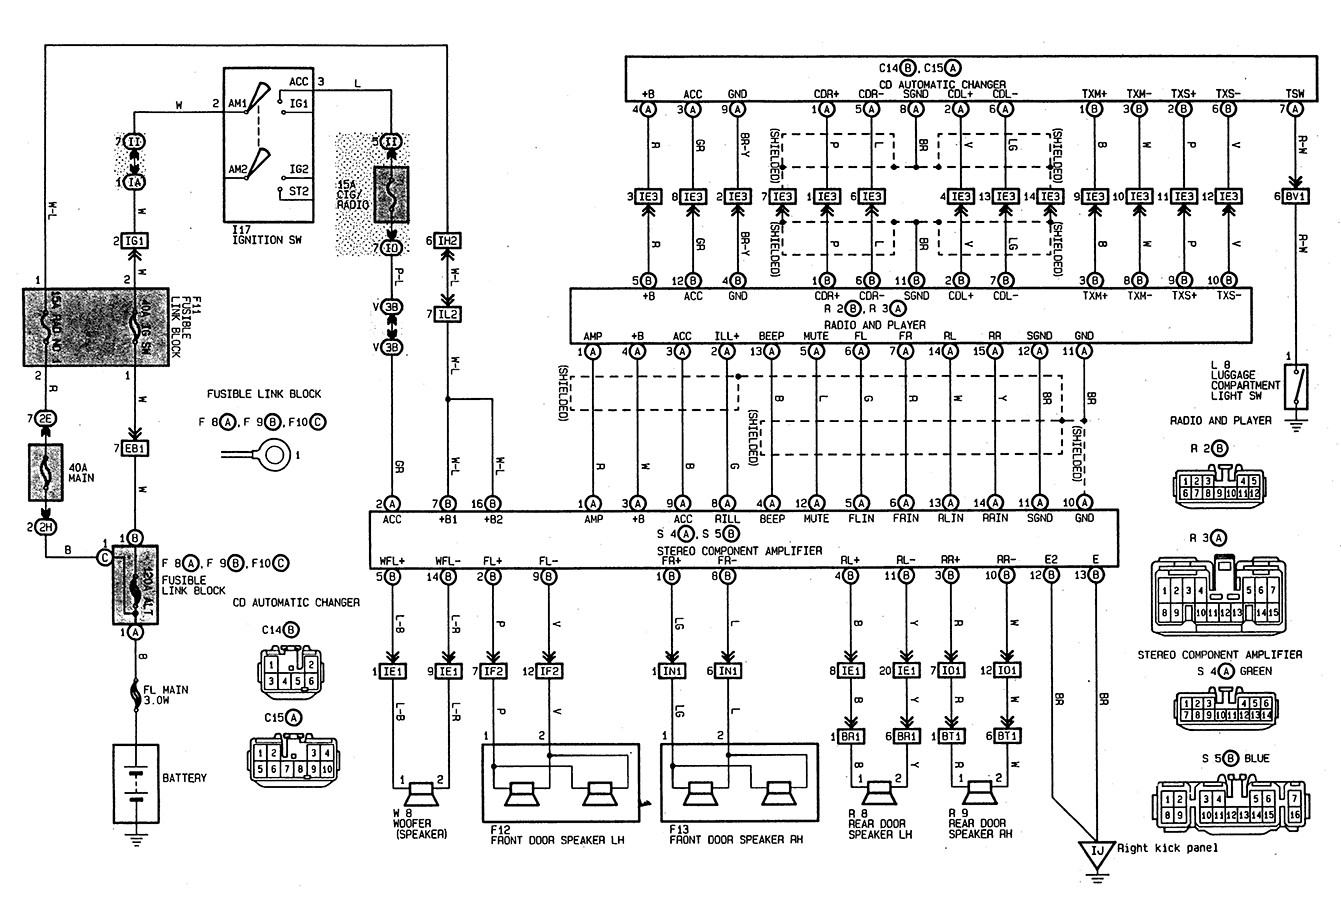 1996 toyota camry radio wiring diagram casablanca inteli touch fan 97 speaker library